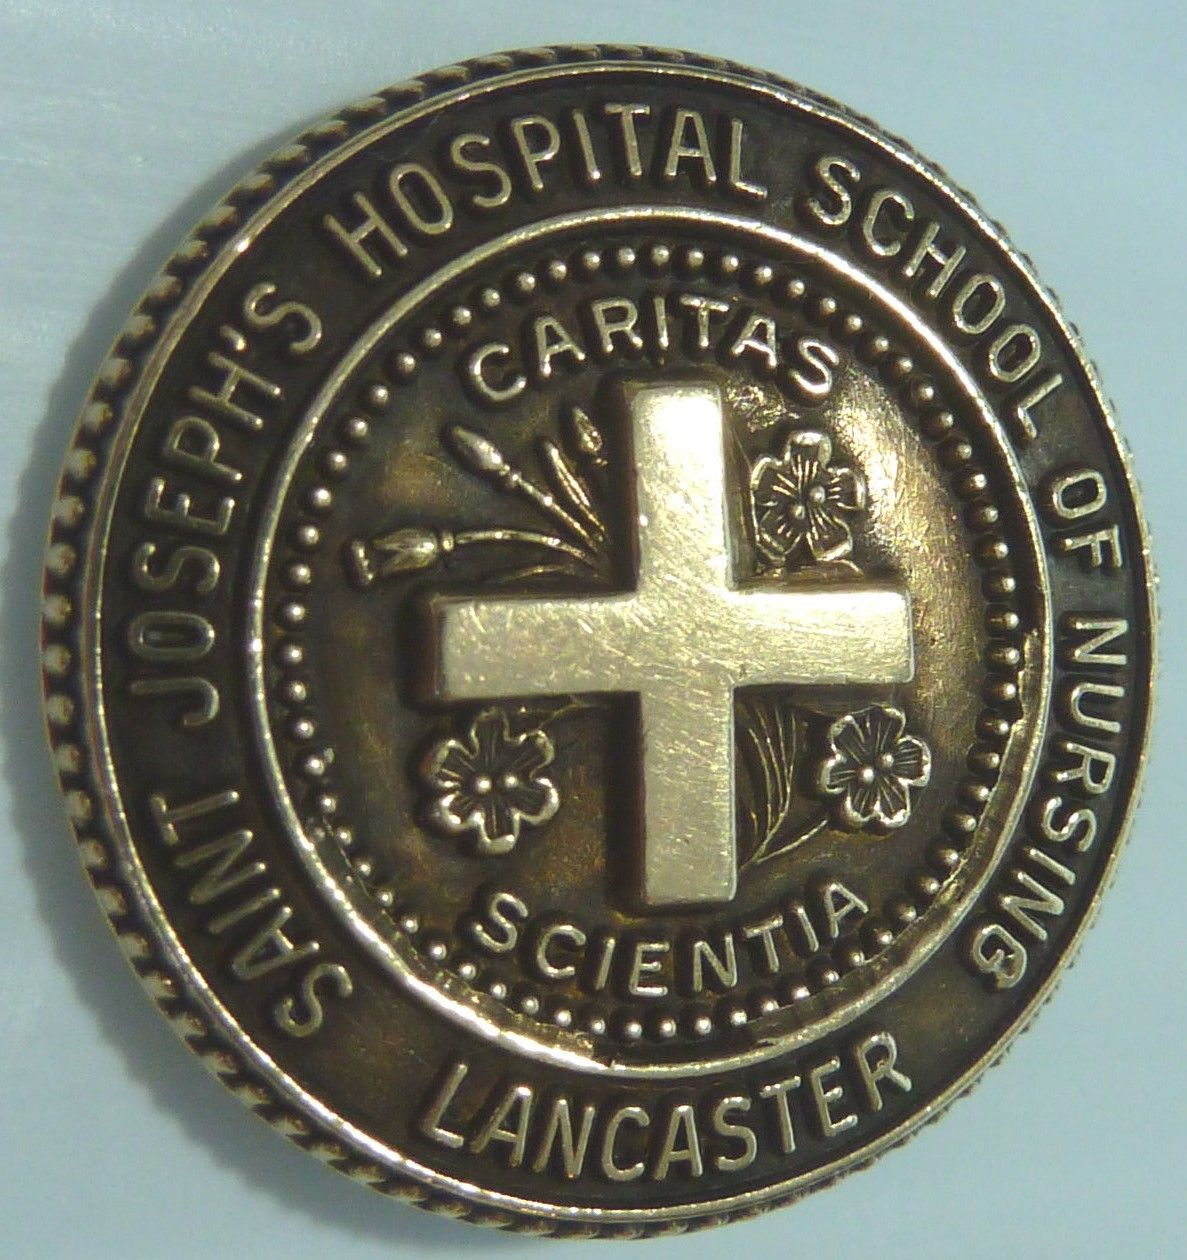 St. Joseph Hospital SON pin, Lancaster, PA | Nursing Pins Plus ...